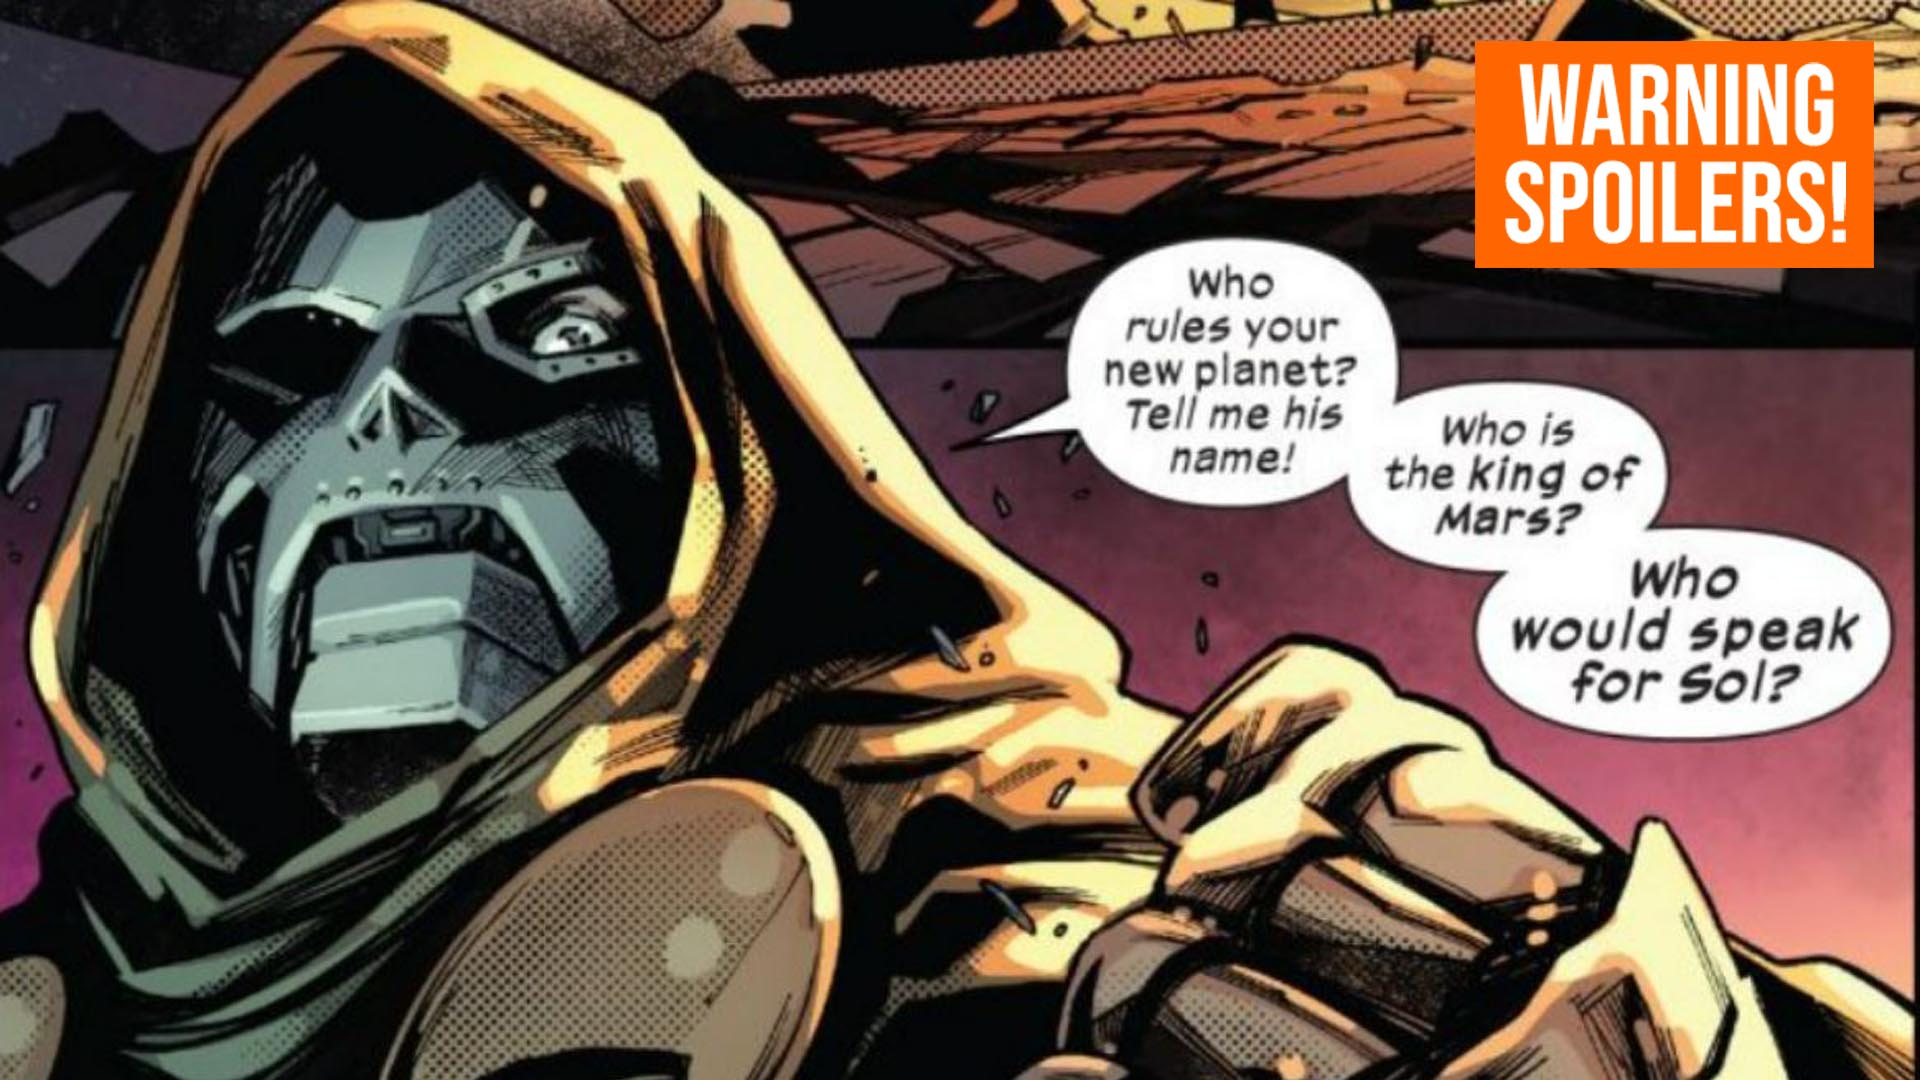 Dr. Doom is asking who would be the king of Mars who speaks for the Sol system.